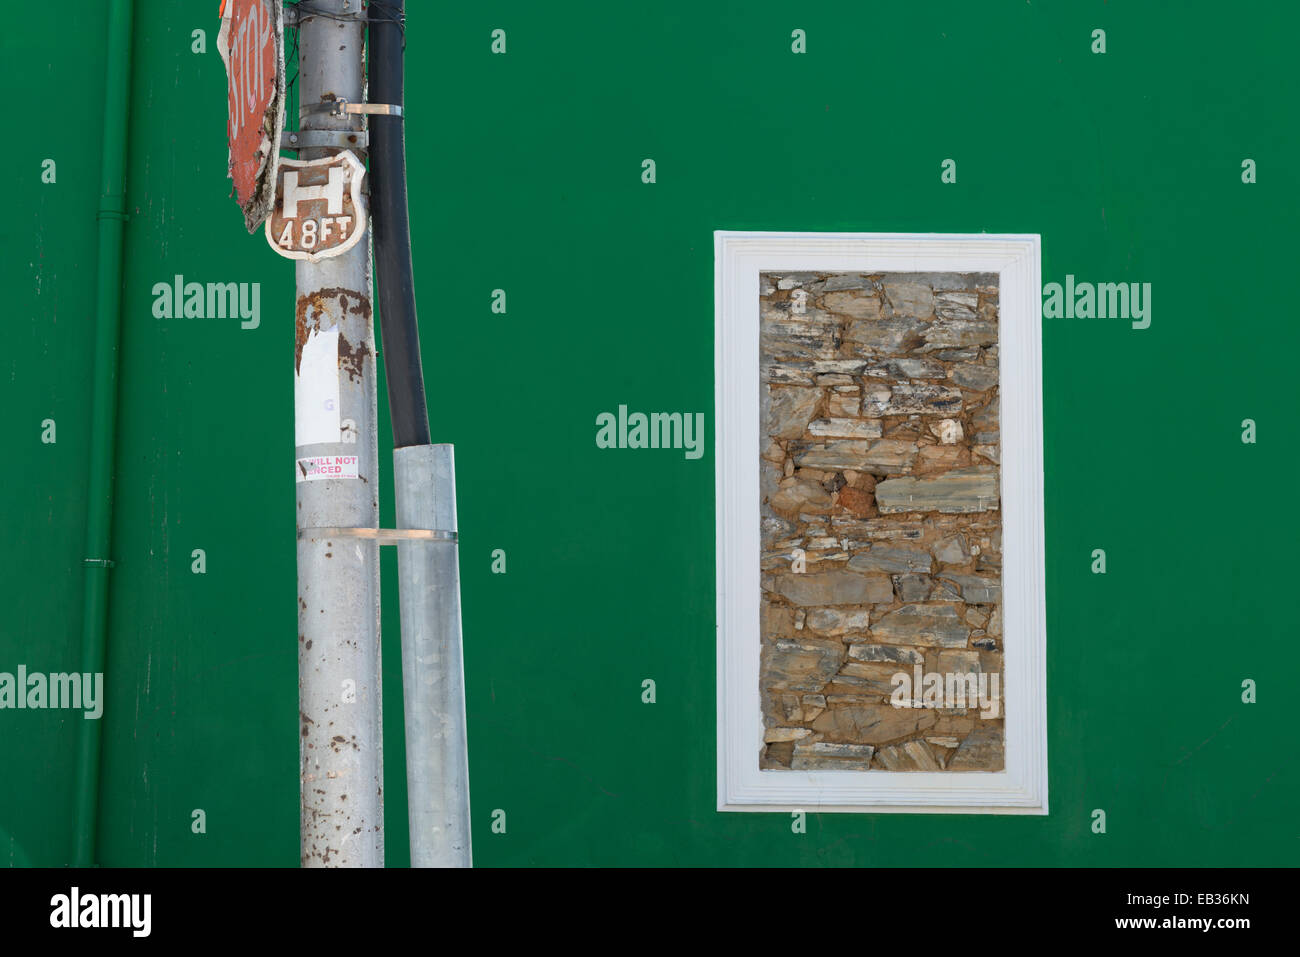 Stonewalled window in a green wall, Bo Kaap, Cape Town, South Africa - Stock Image